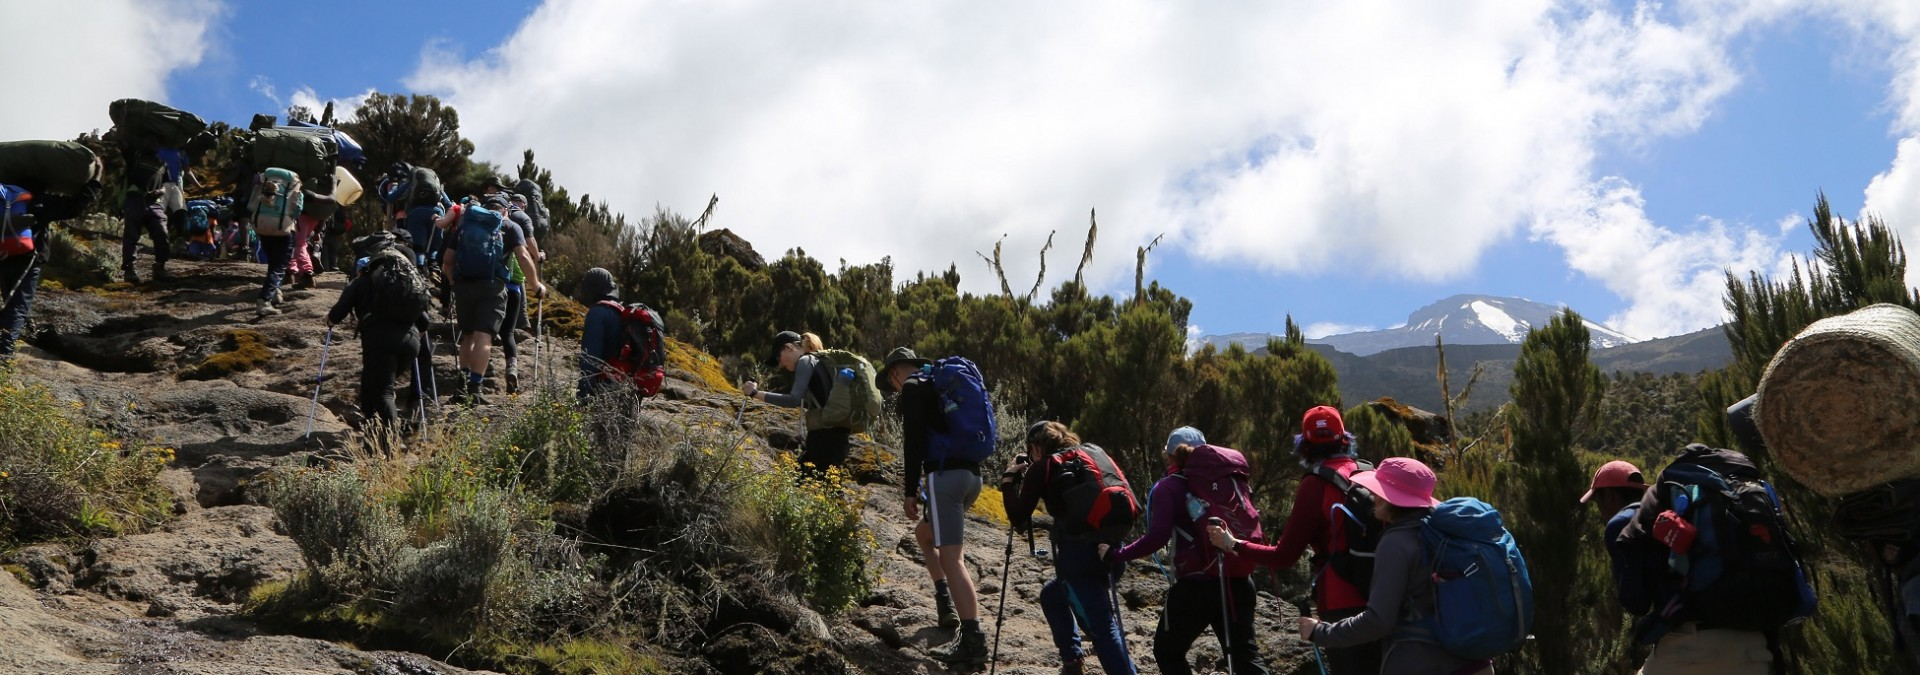 Trekking on the steep ascent onto the Shira Plateau